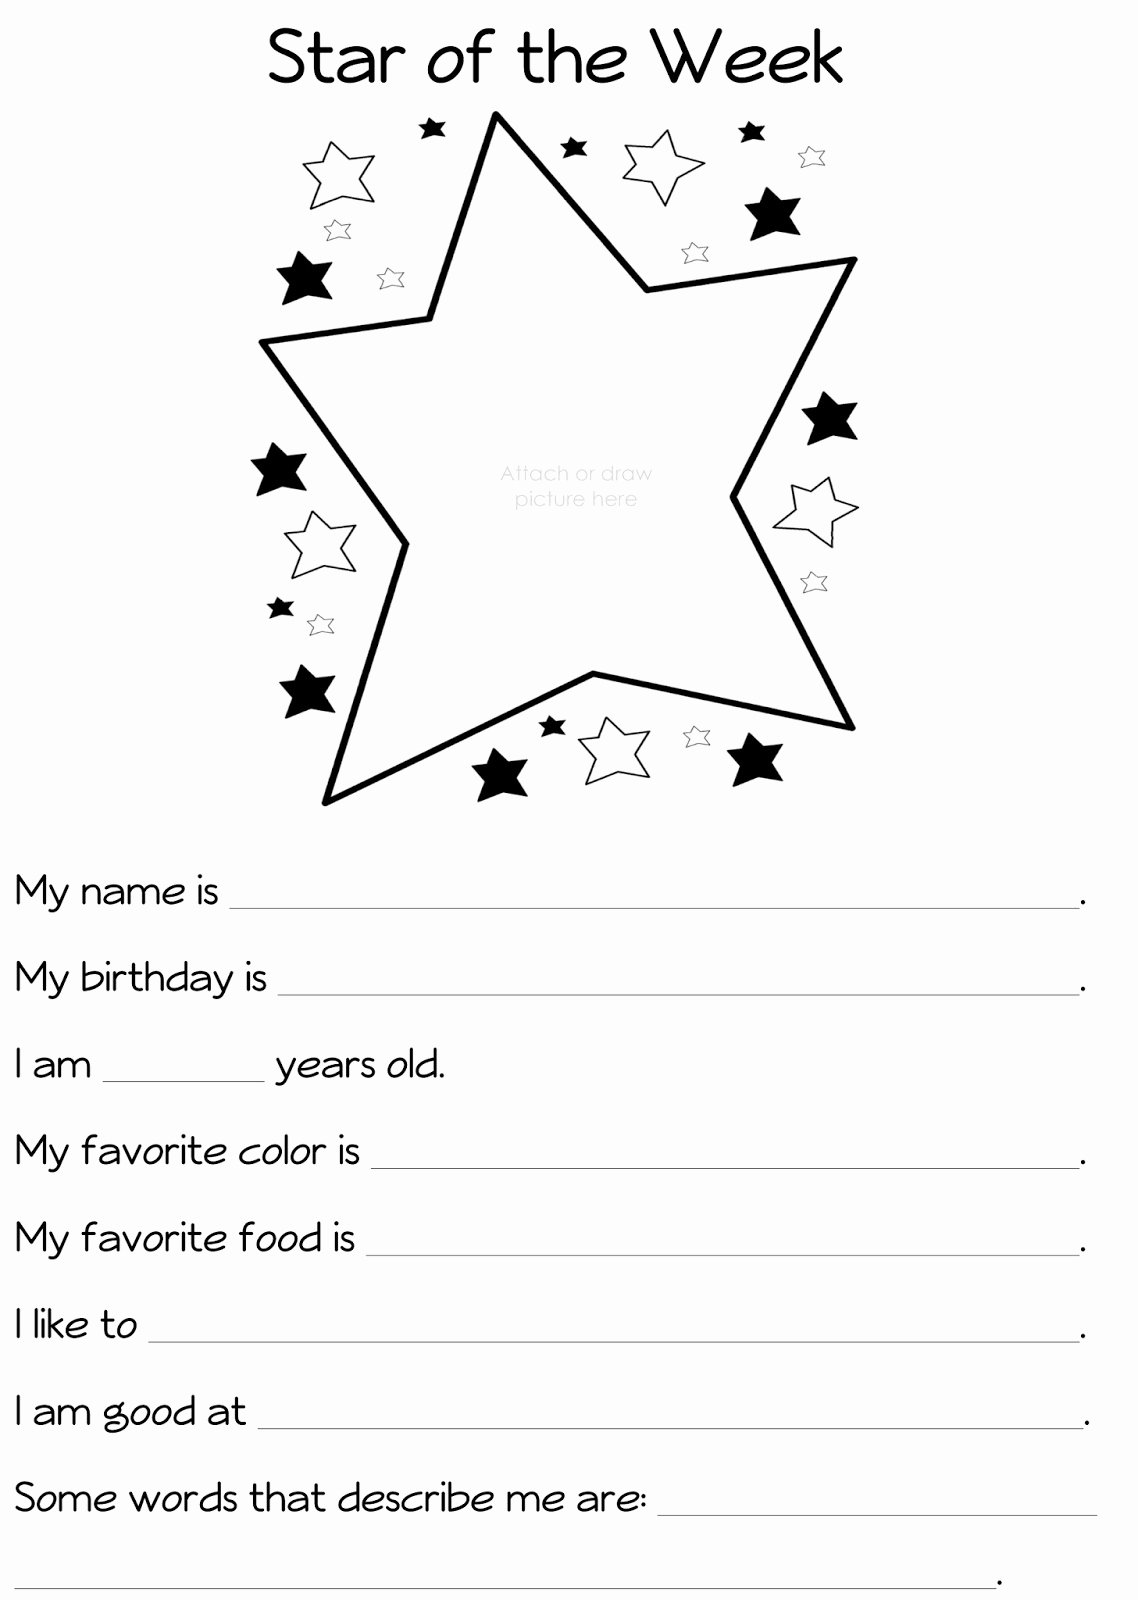 Student Of the Week Template Elegant River Bliss Star Of the Week Celebrating What S Special